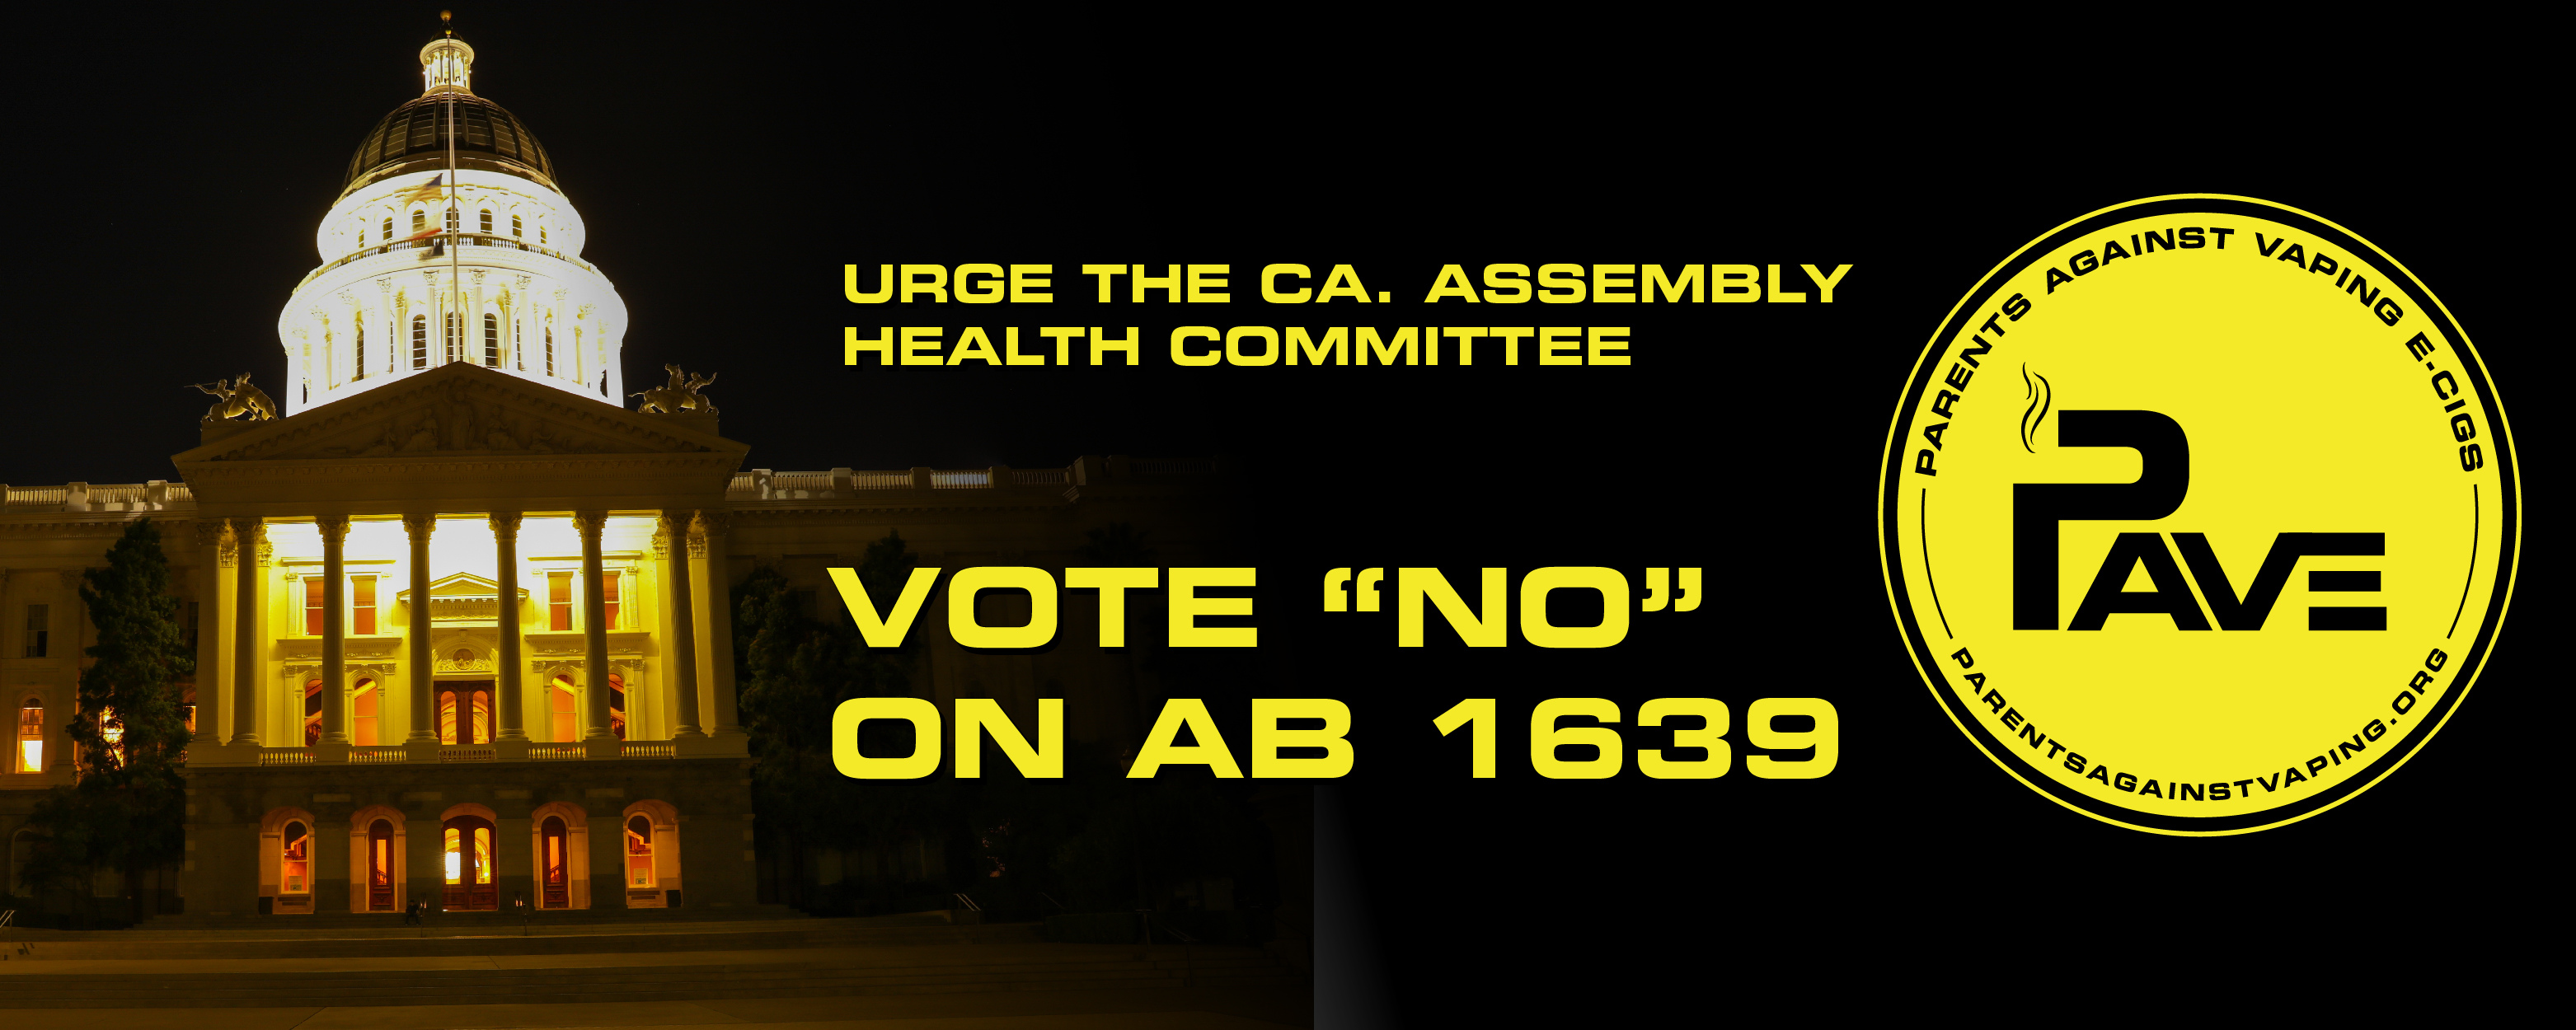 Actionnetwork_californiapetition_banner-01